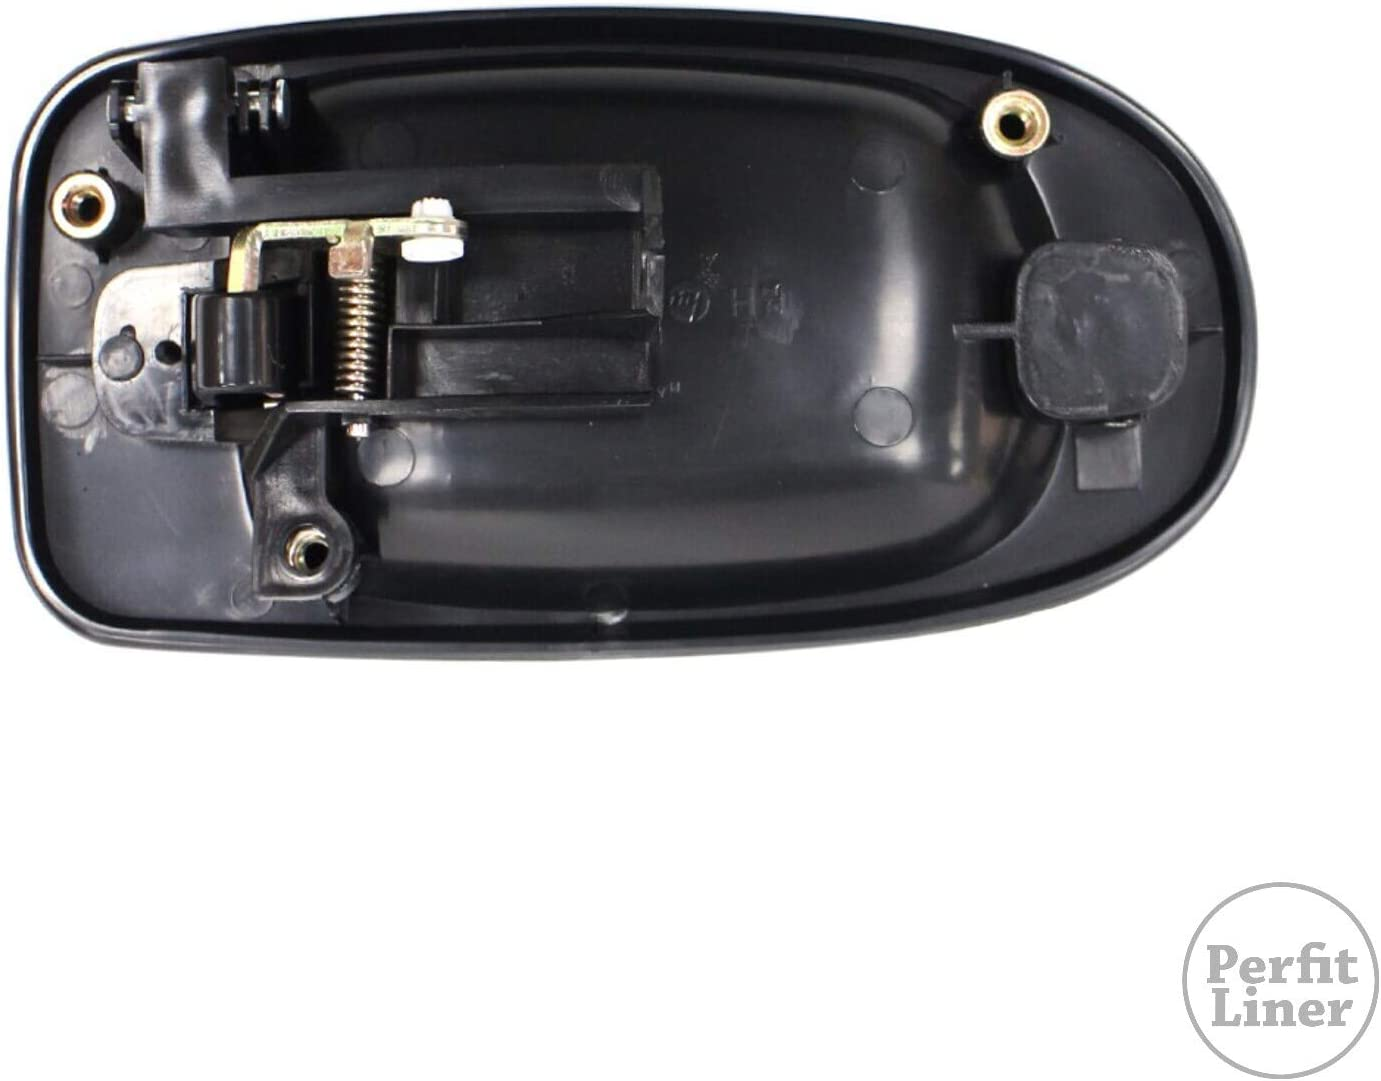 Rear,Right DOOR OUTER HANDLE For Pontiac,Oldsmobile,Chevrolet 10322224 New